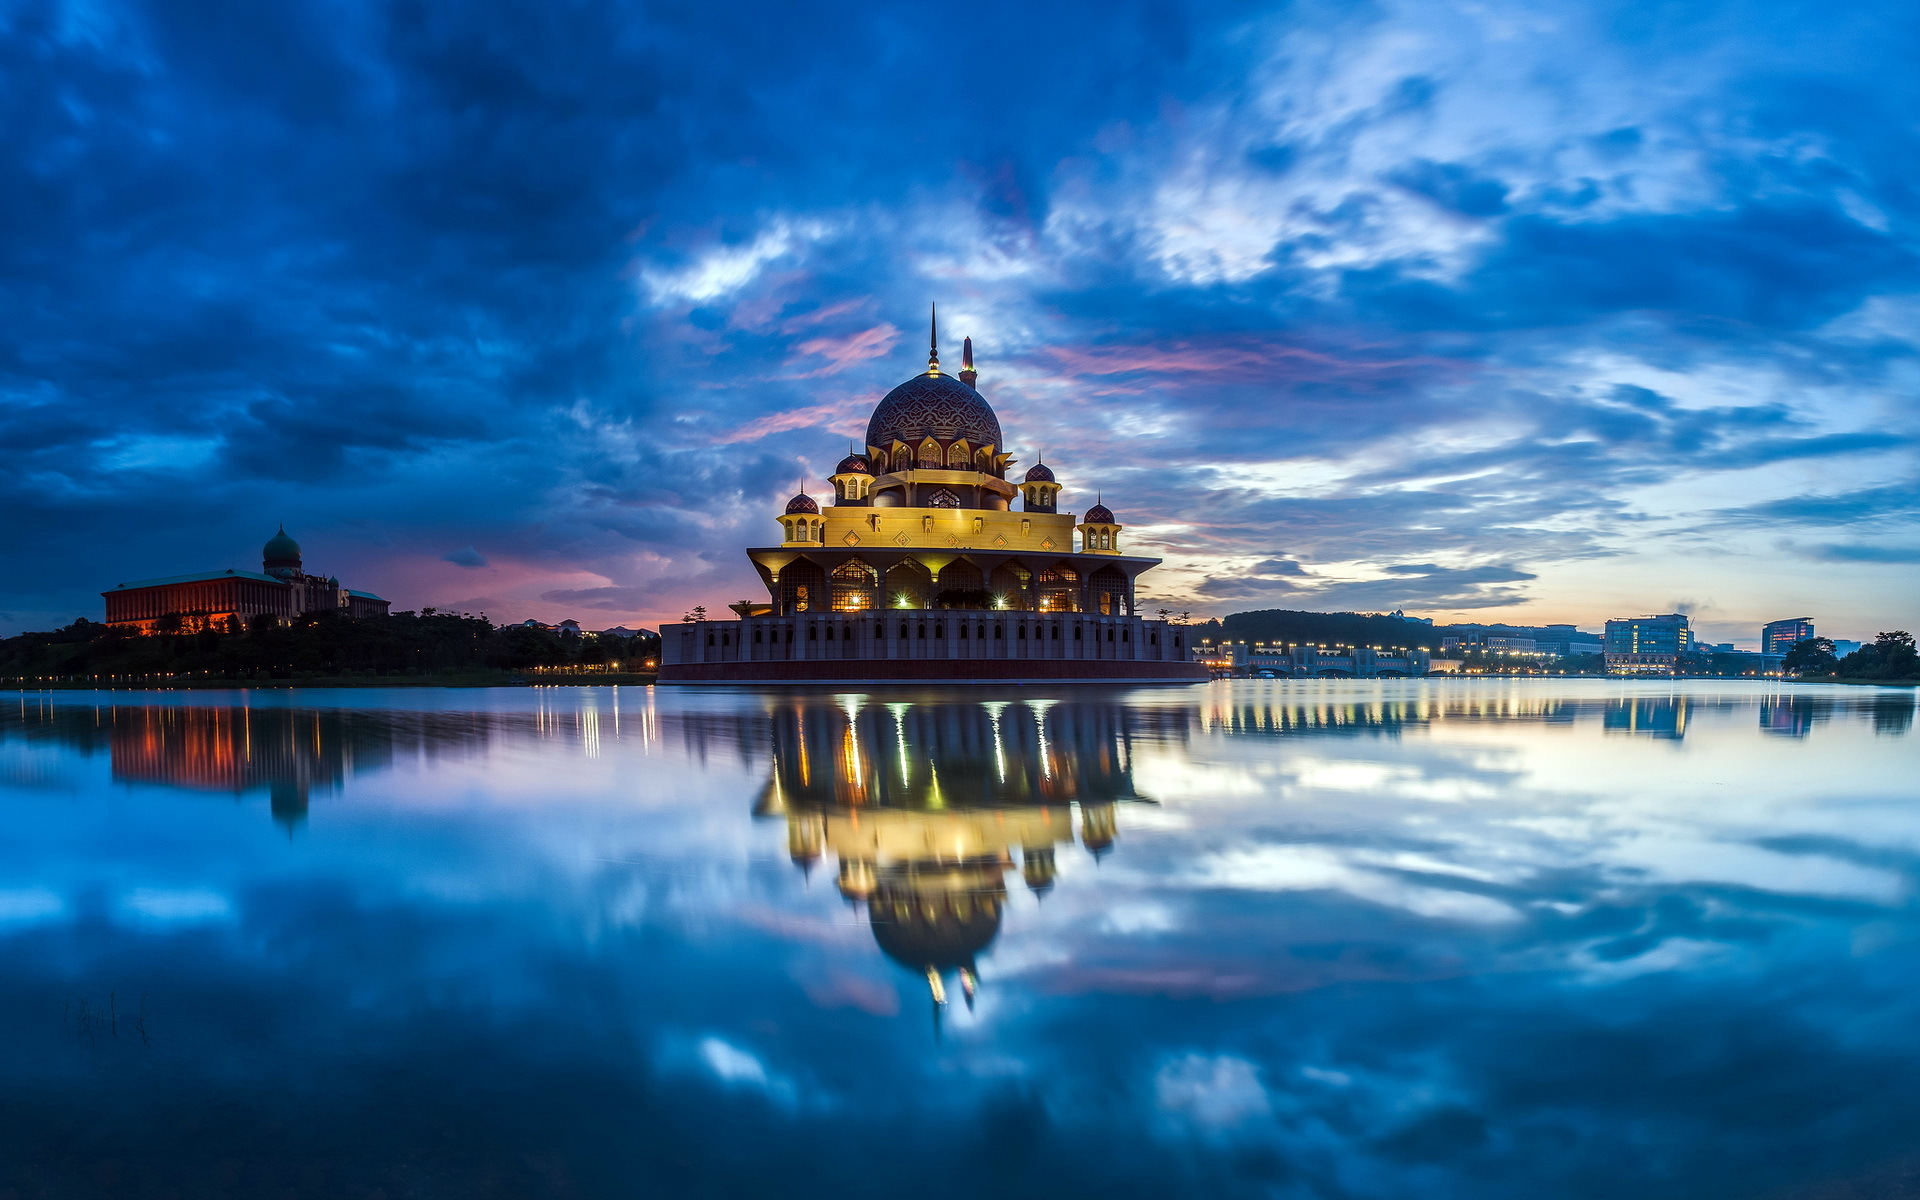 historical background of malaysia Background: malaysia is a multi-ethnic and multi-religious country in southeast asia and one of the wealthiest and most developed countries, outranked in gnp only by singapore and oil-rich brunei.